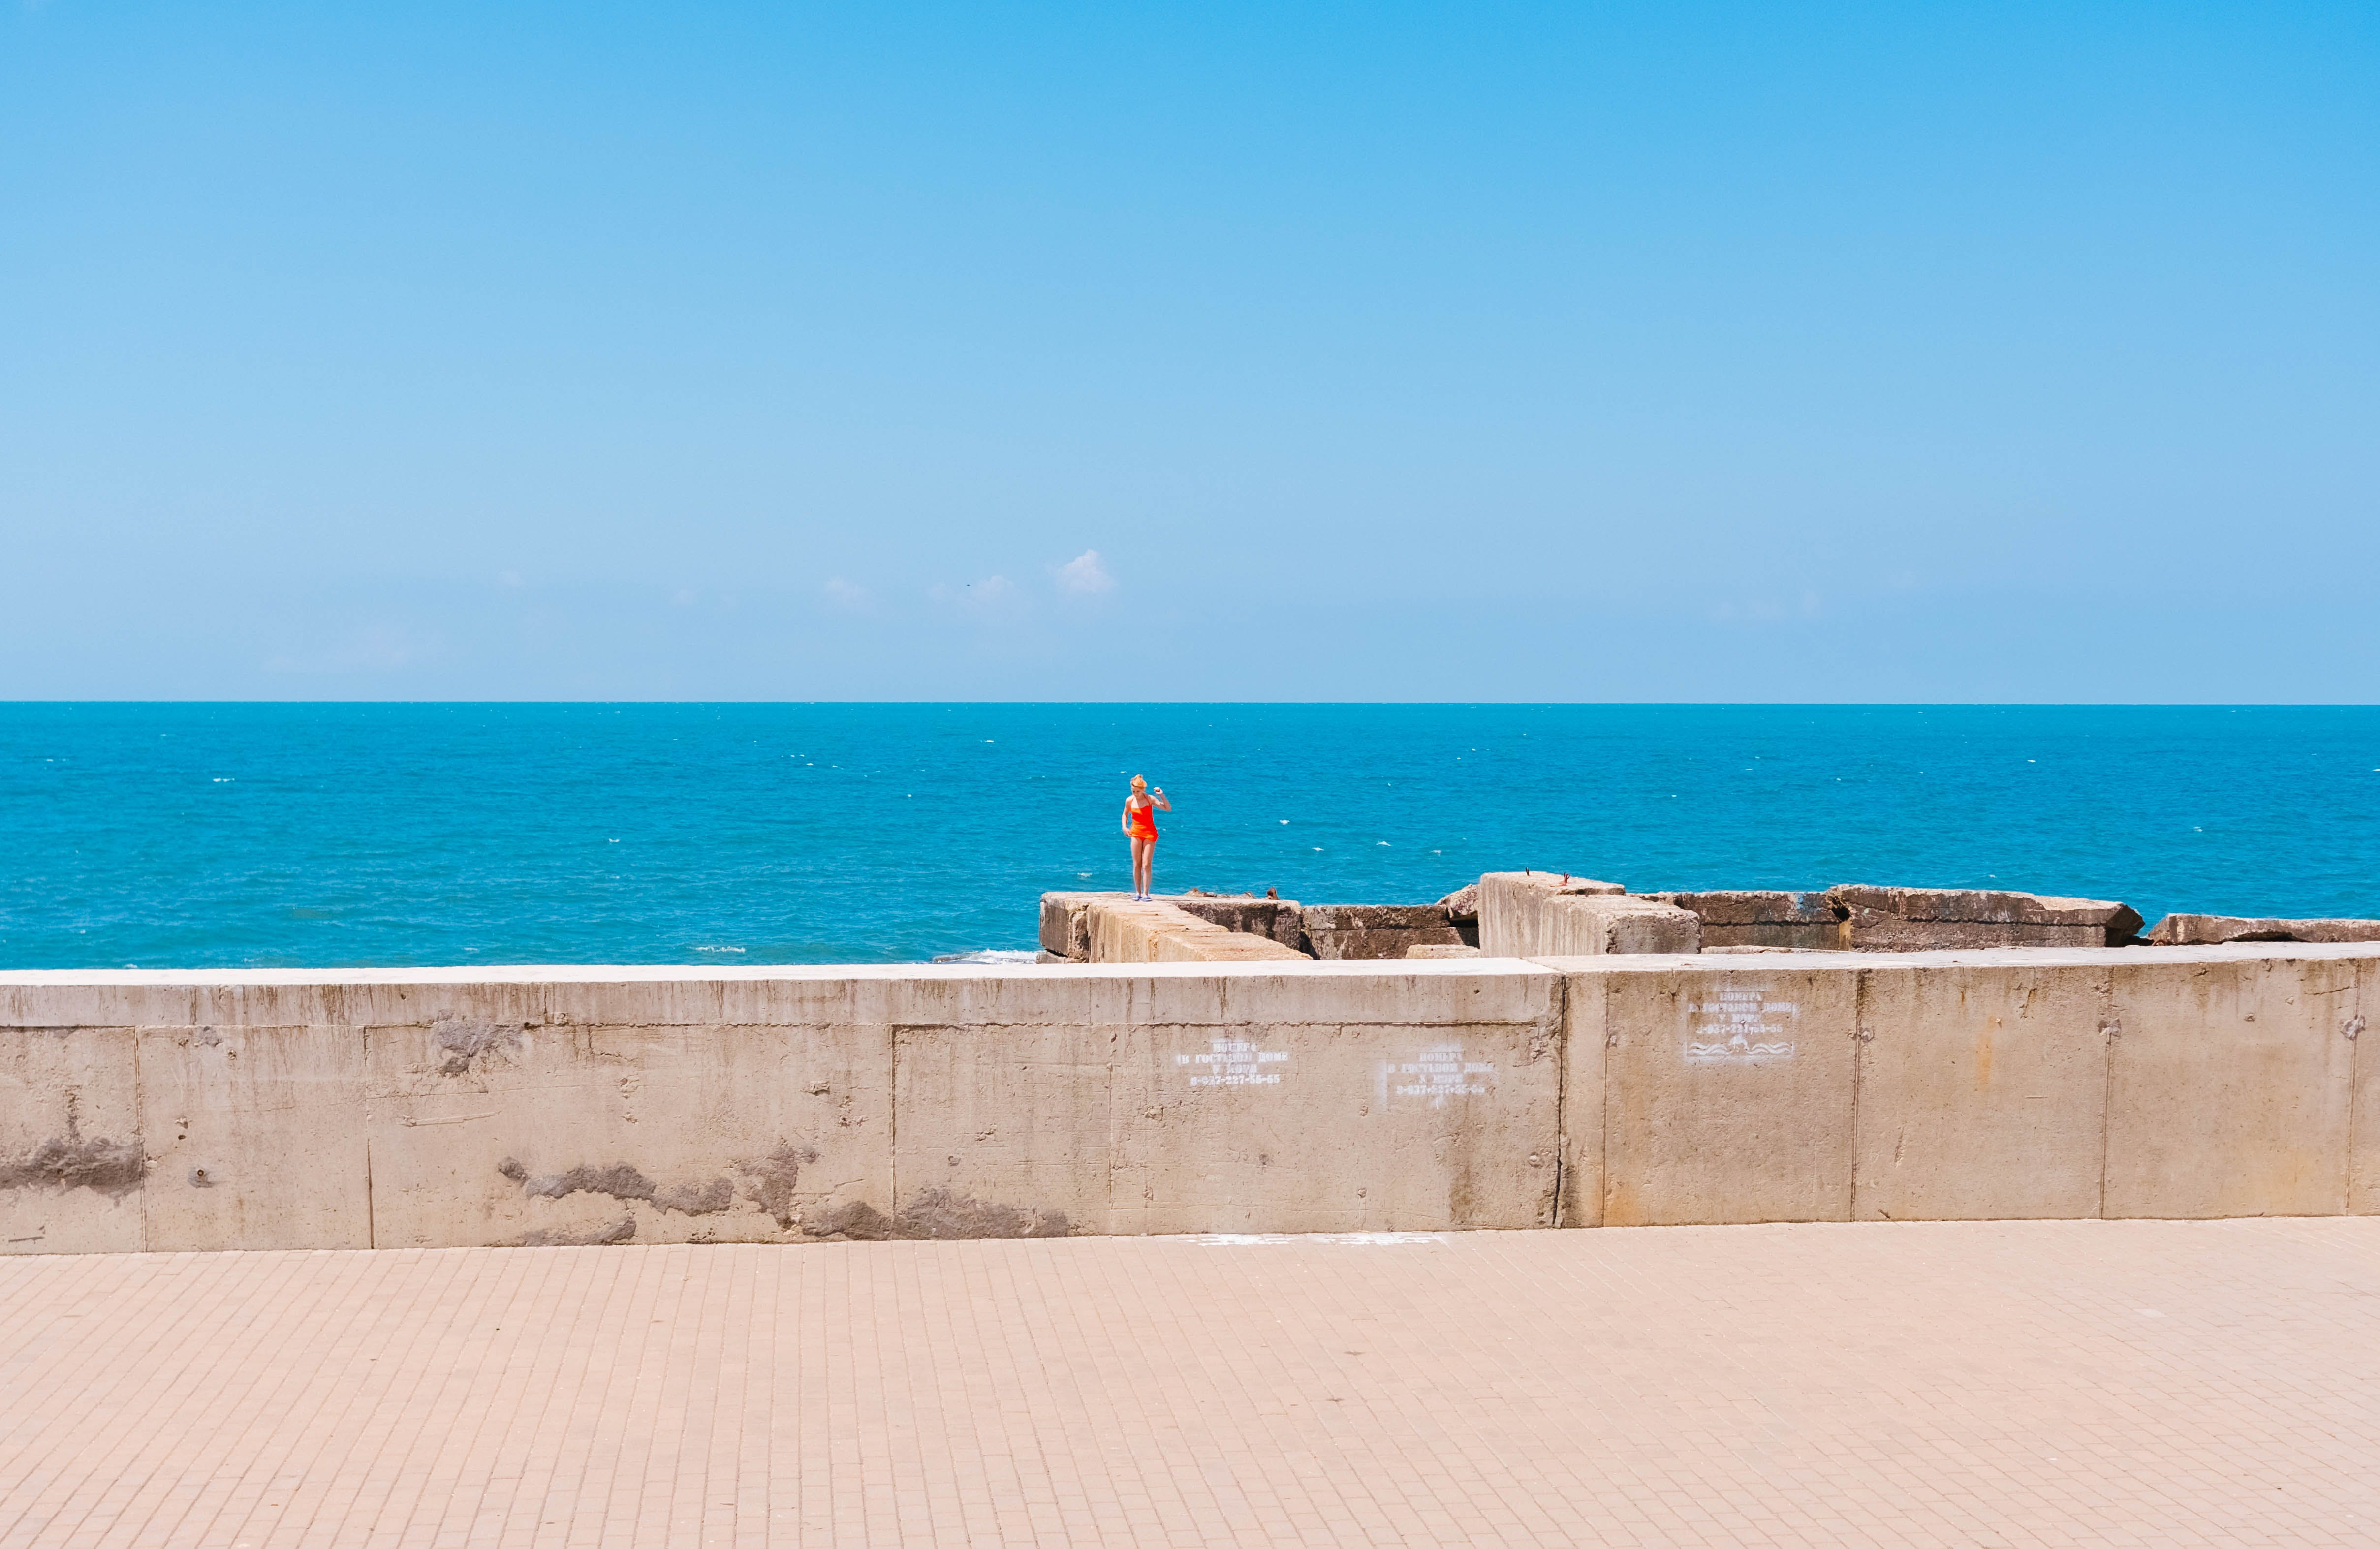 Person Standing On Concrete Wall Near Ocean Water Under Clear Blue Sky